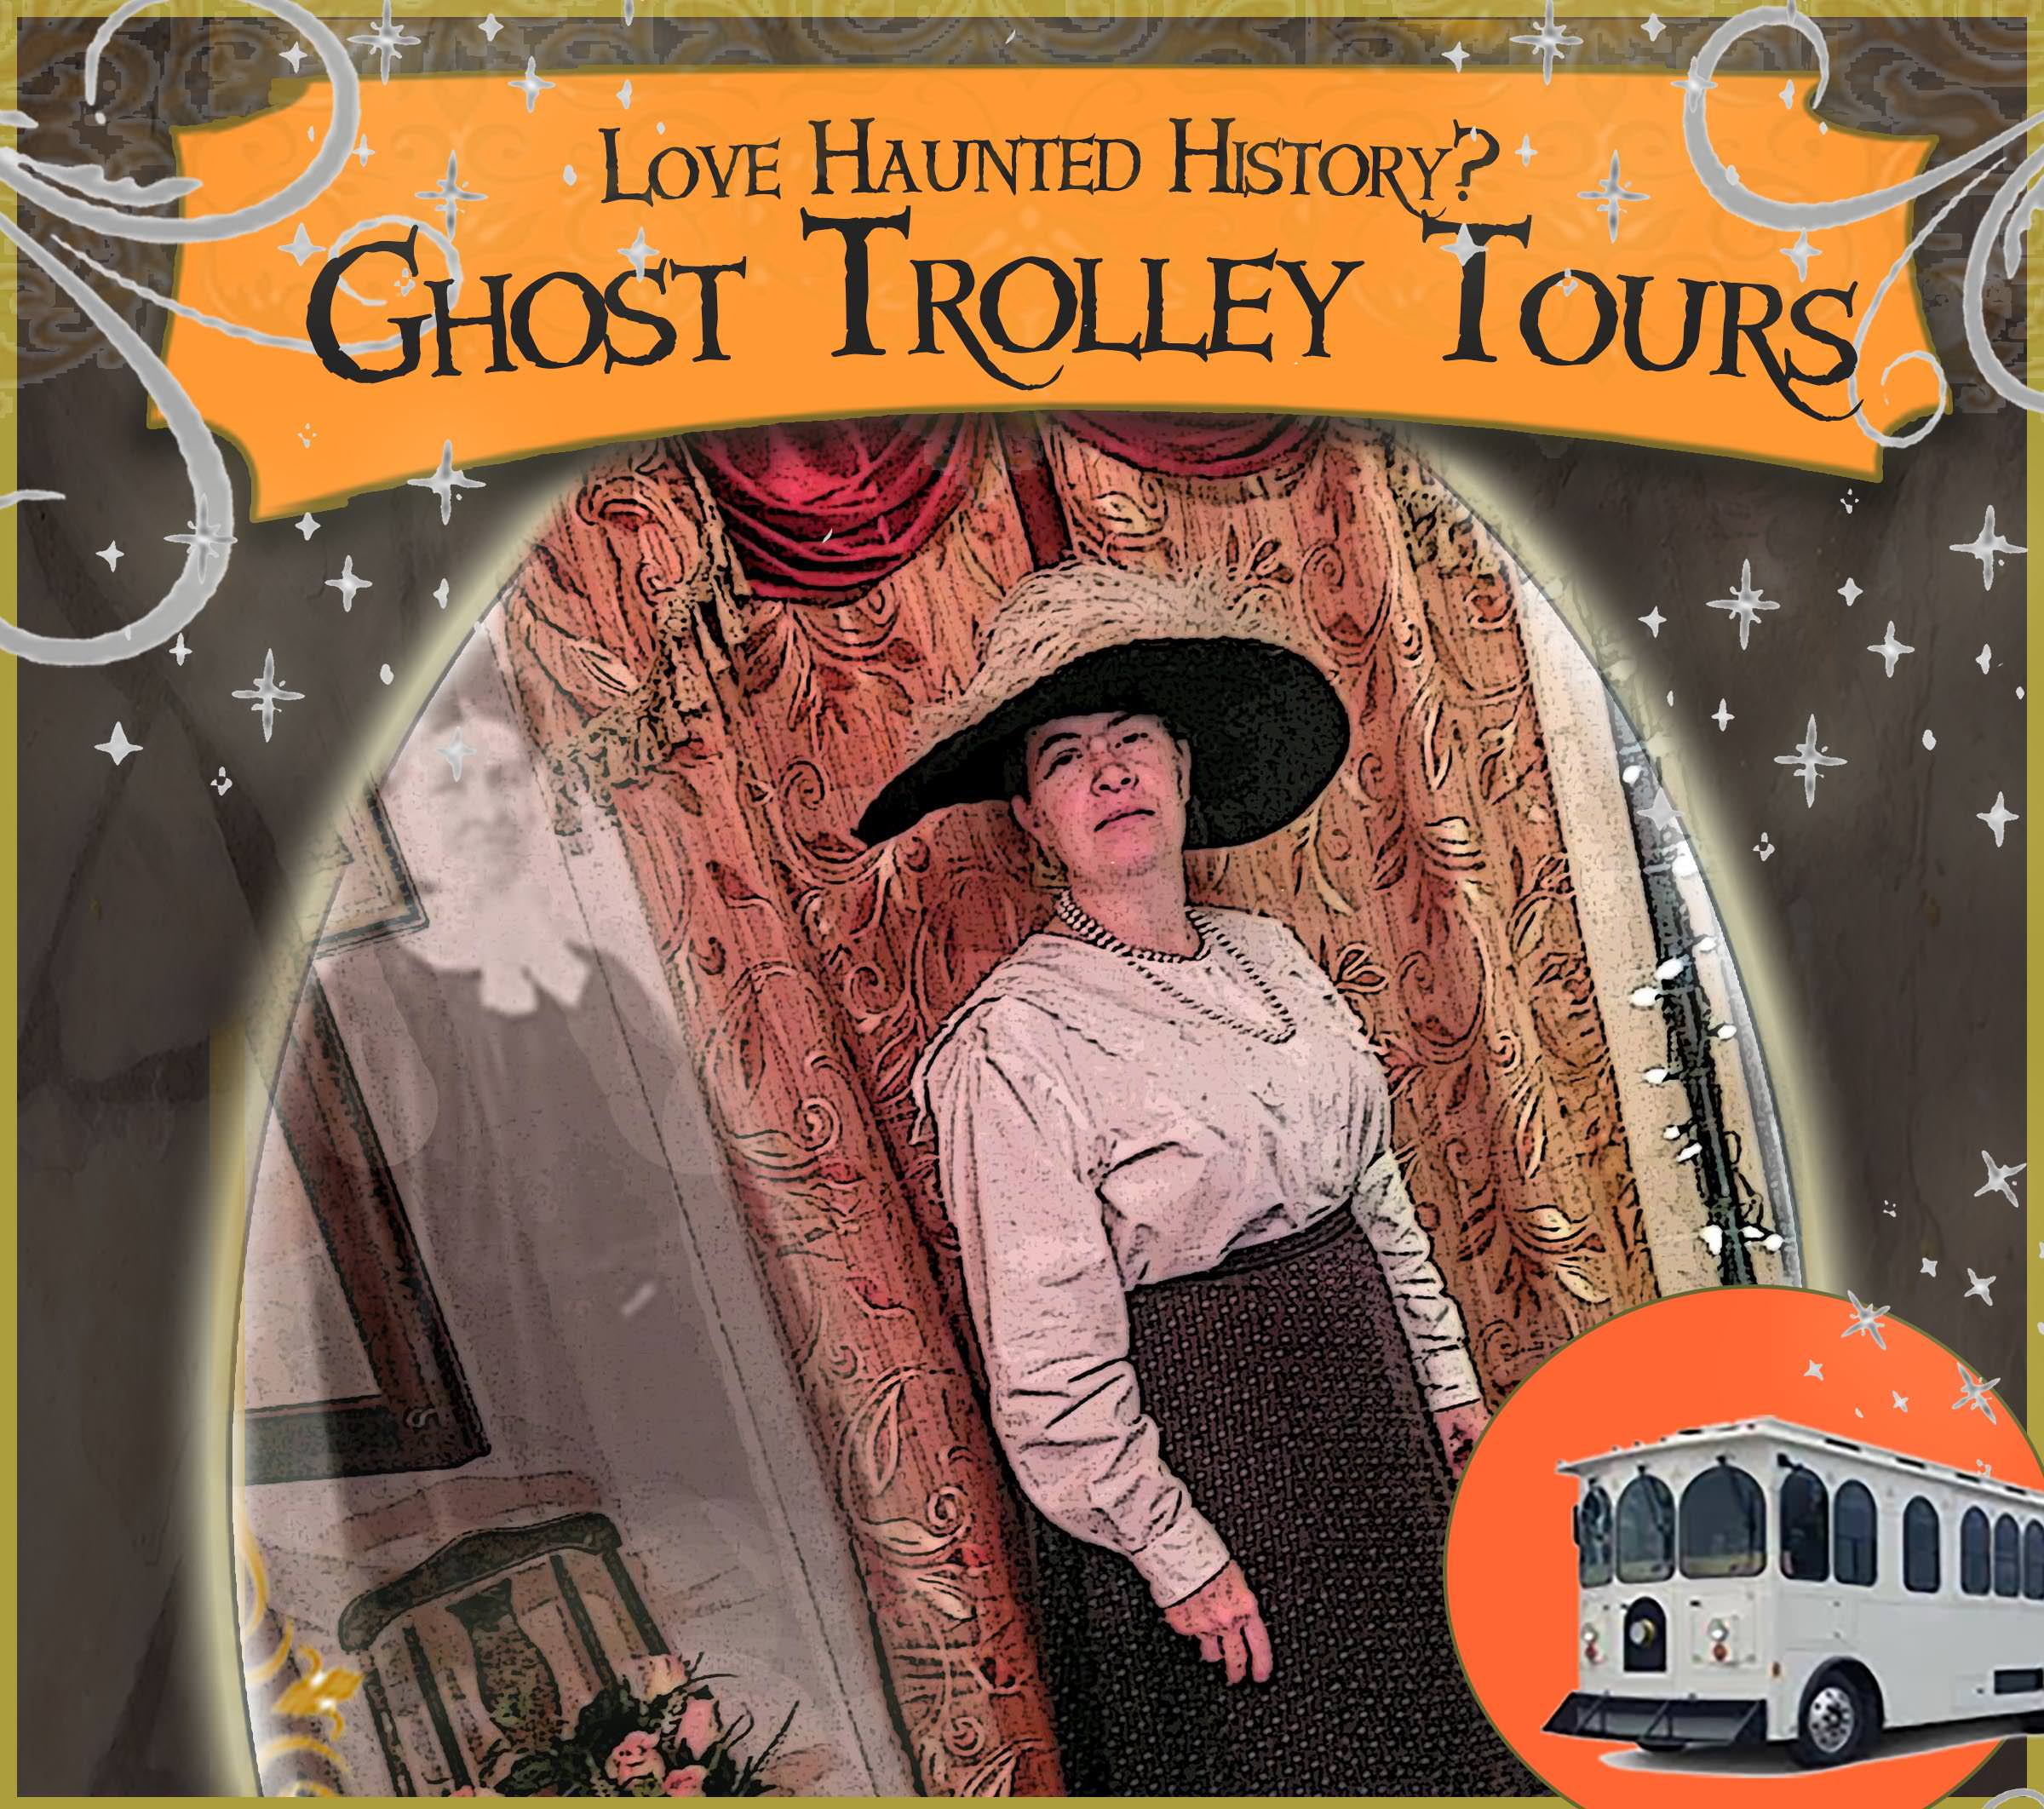 Ghost Trolley Tours